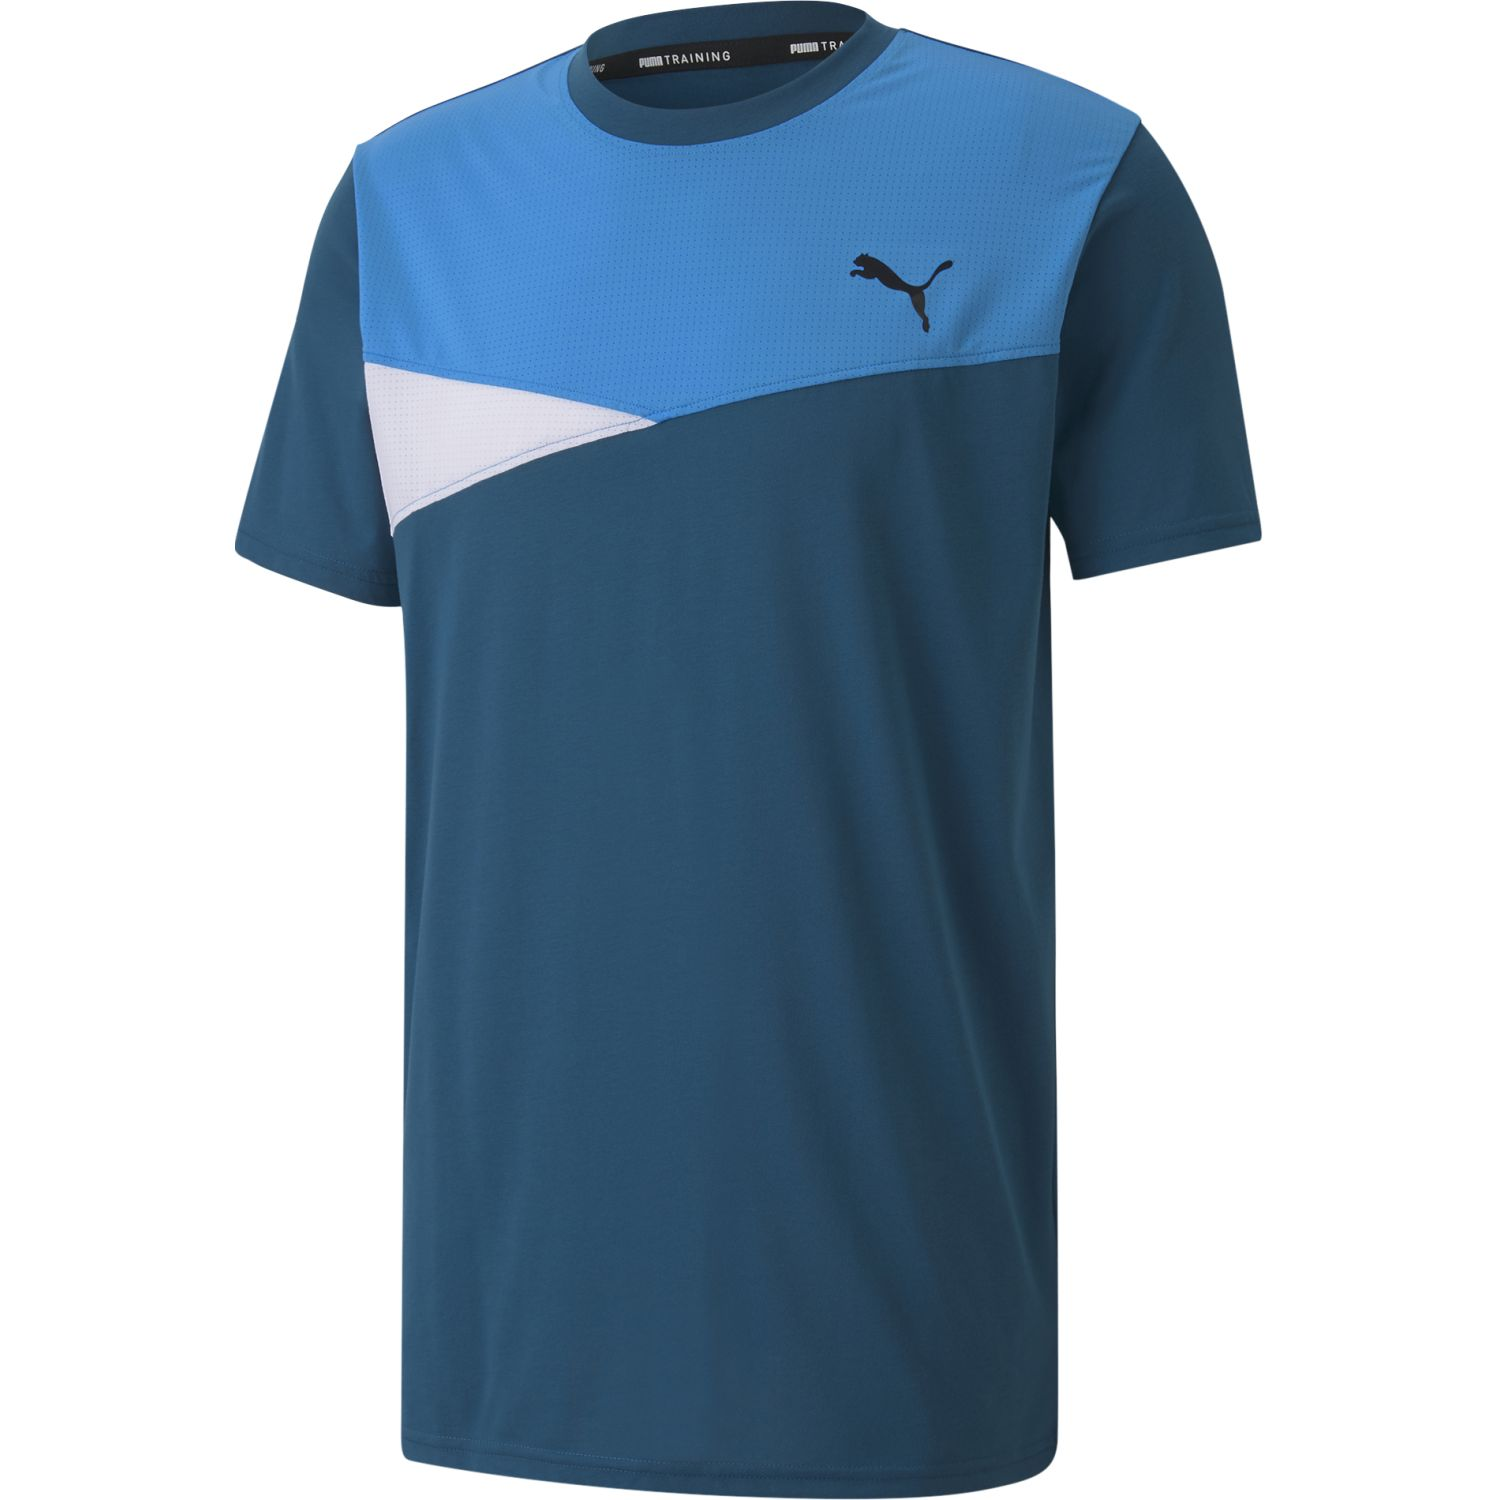 Puma Train Color Block Short Sleeve Tee Azul Camisetas y polos deportivos